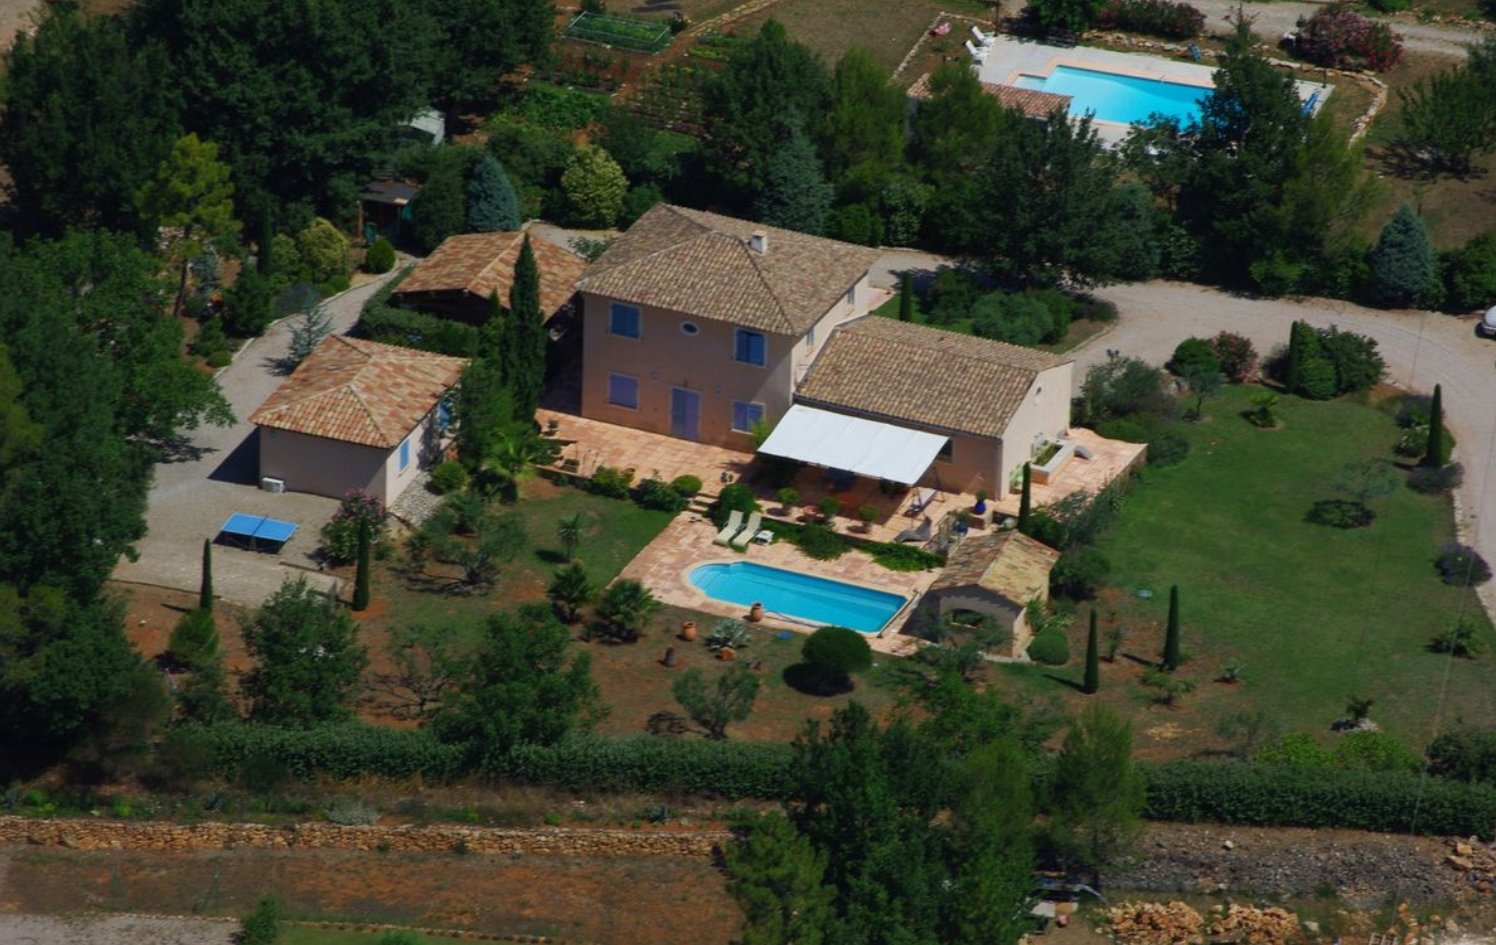 CHARMING BASTIDE WITHIN PARK